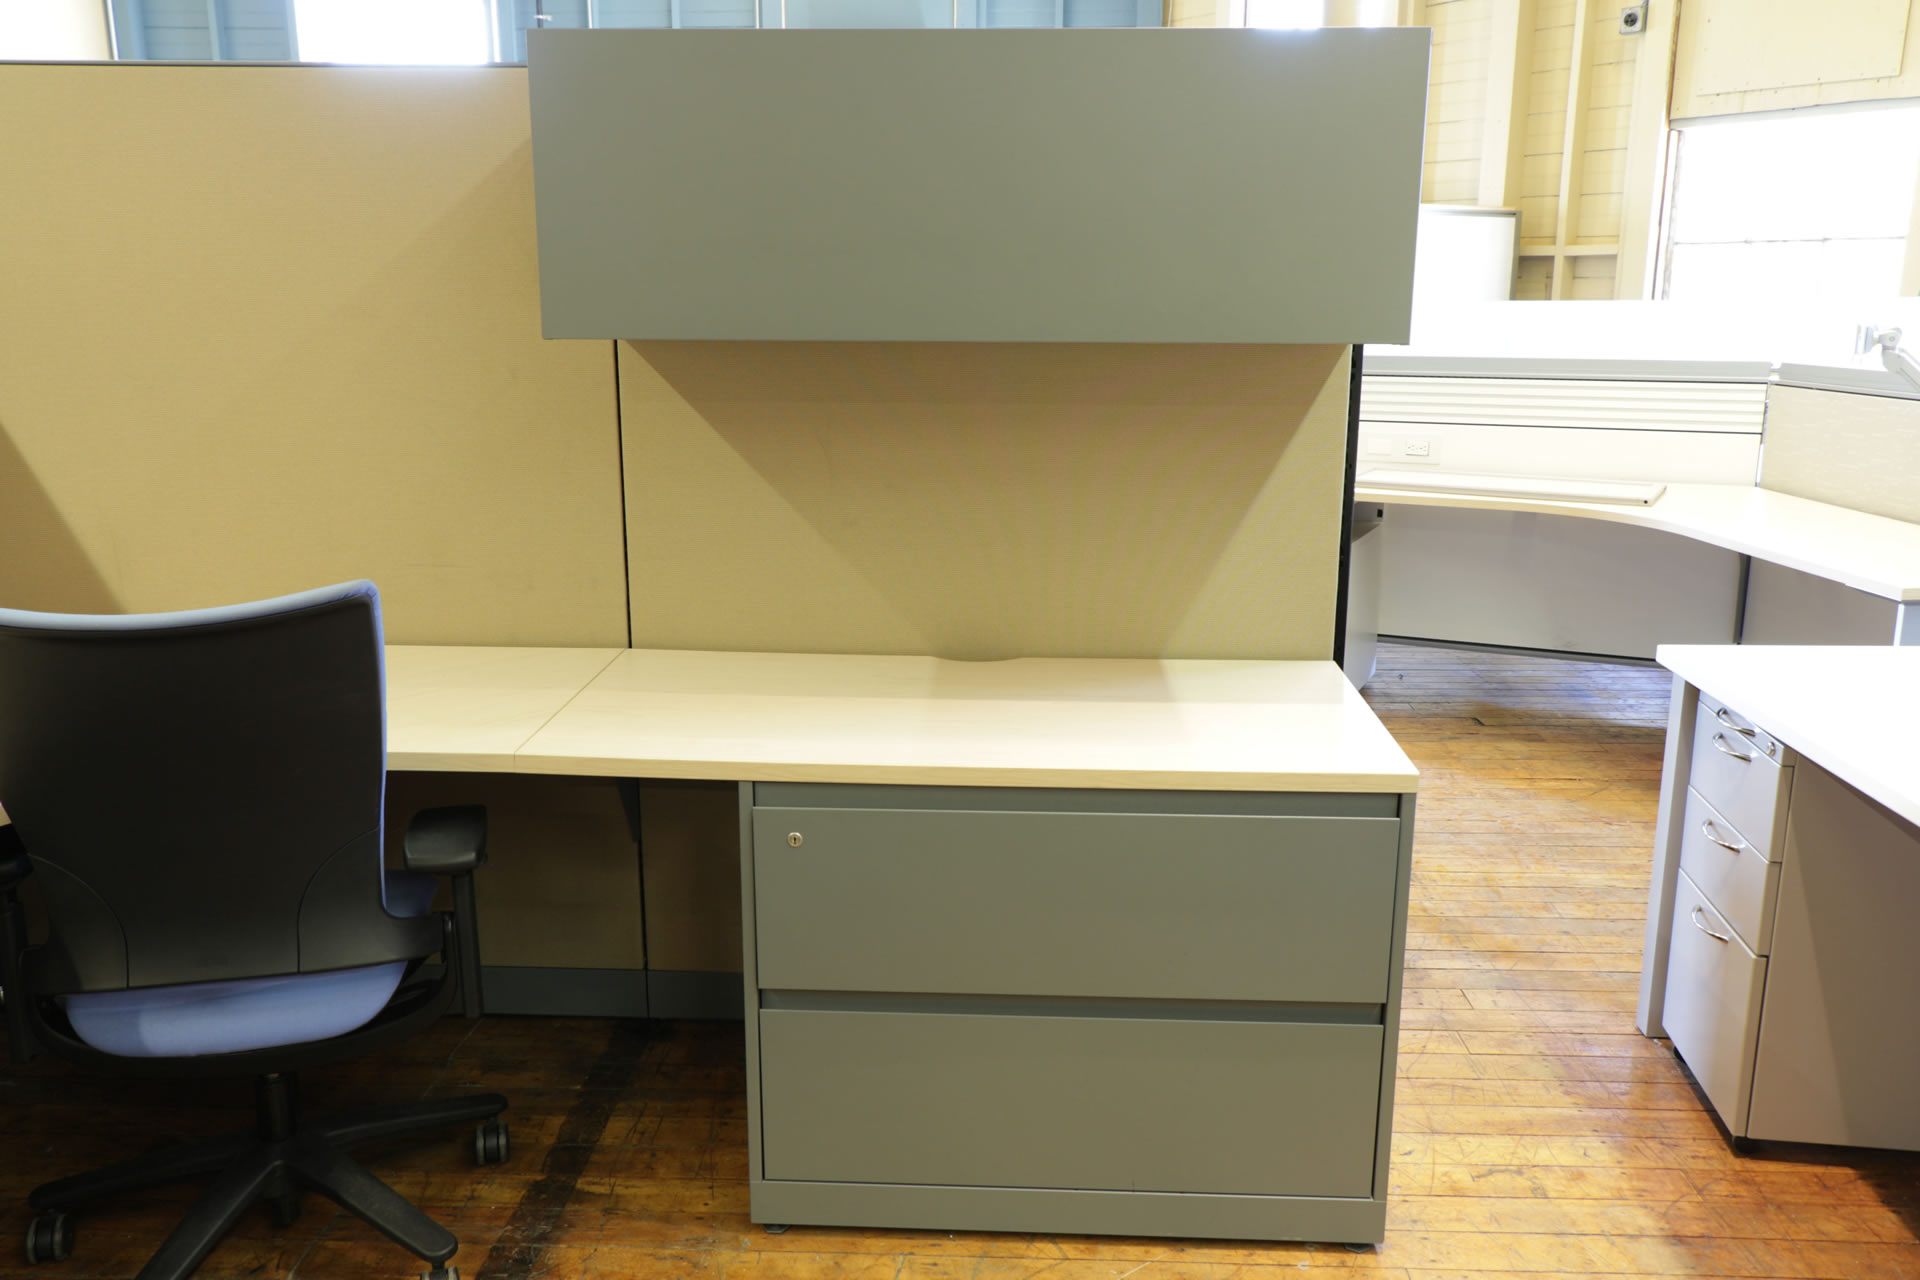 peartreeofficefurniture_peartreeofficefurniture_peartreeofficefurniture_img_9331.jpg